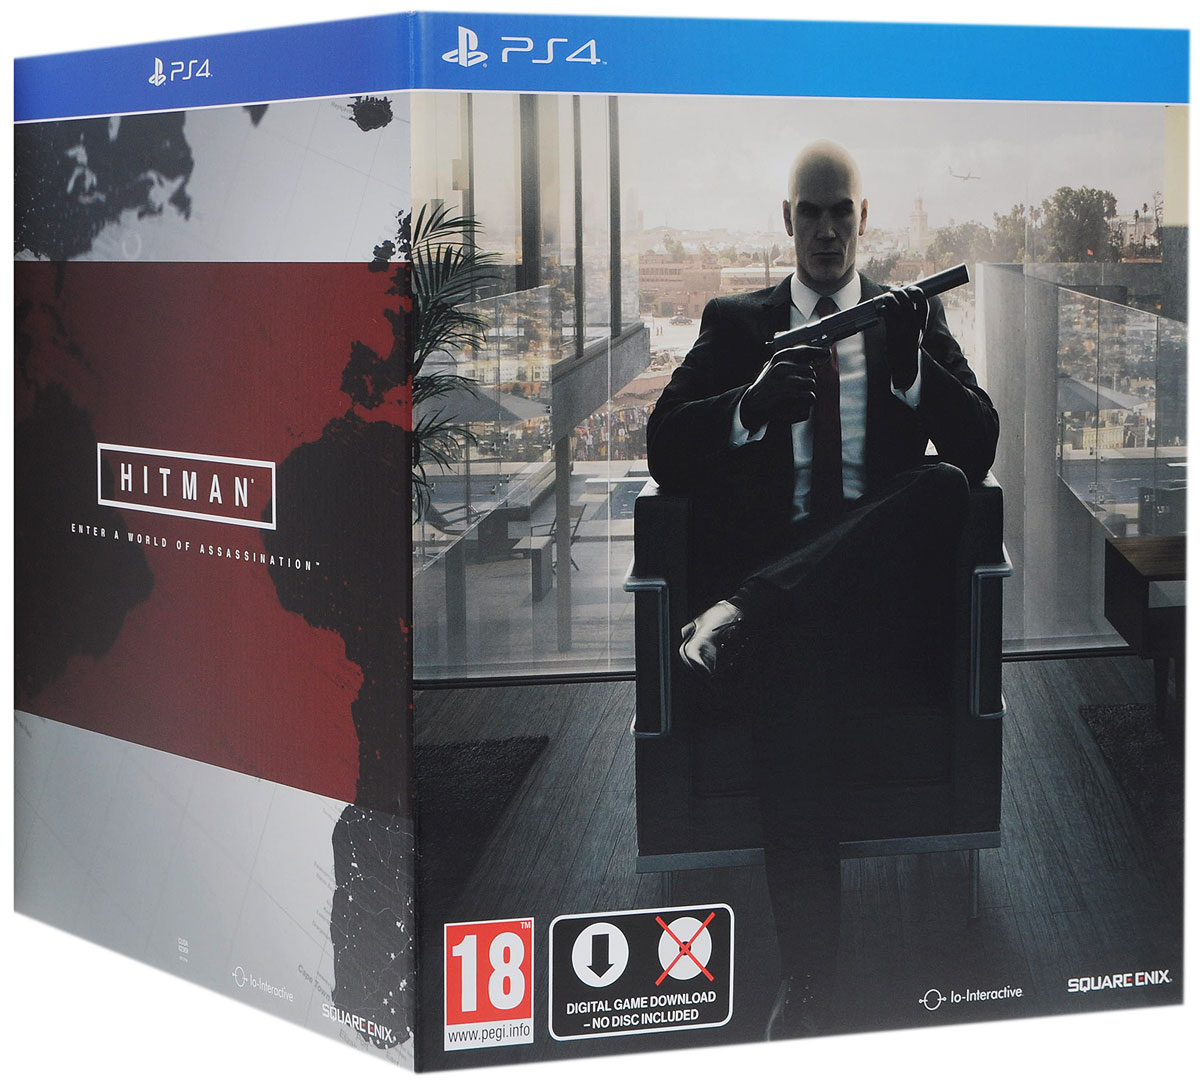 Hitman. Digital Collector's Edition (PS4) игра